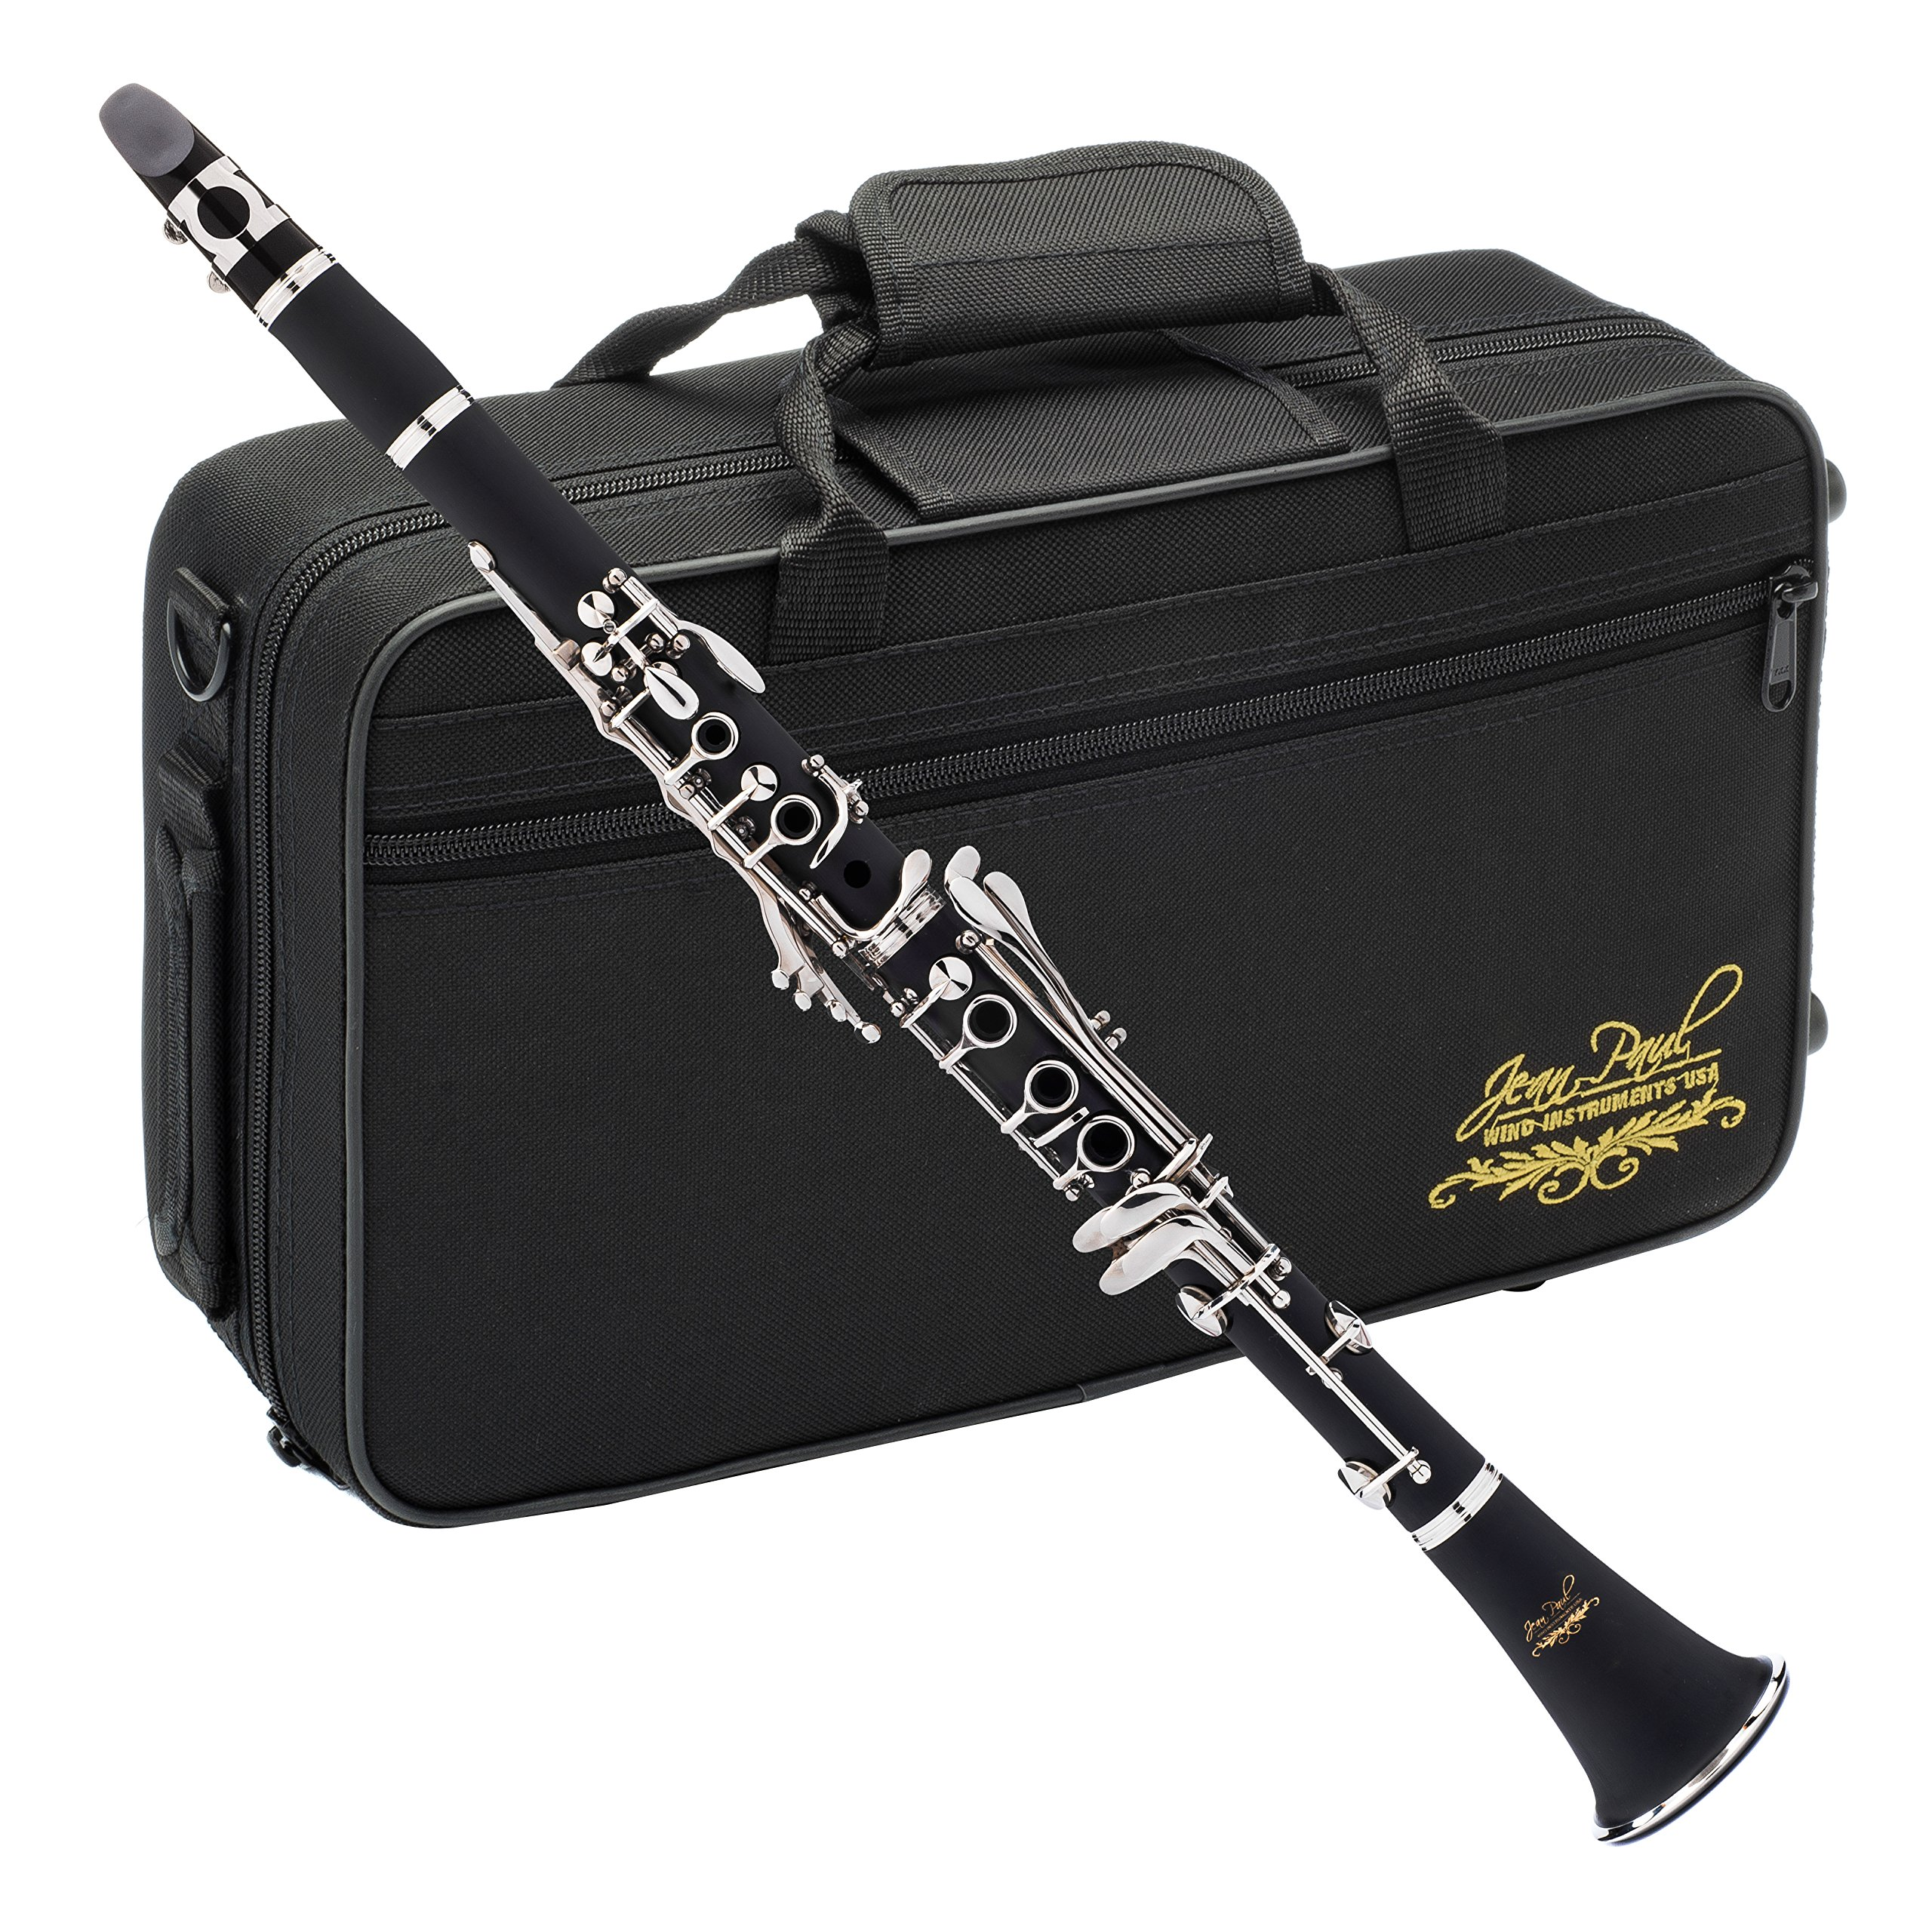 Jean Paul USA CL-300 Student Clarinet by Jean Paul USA